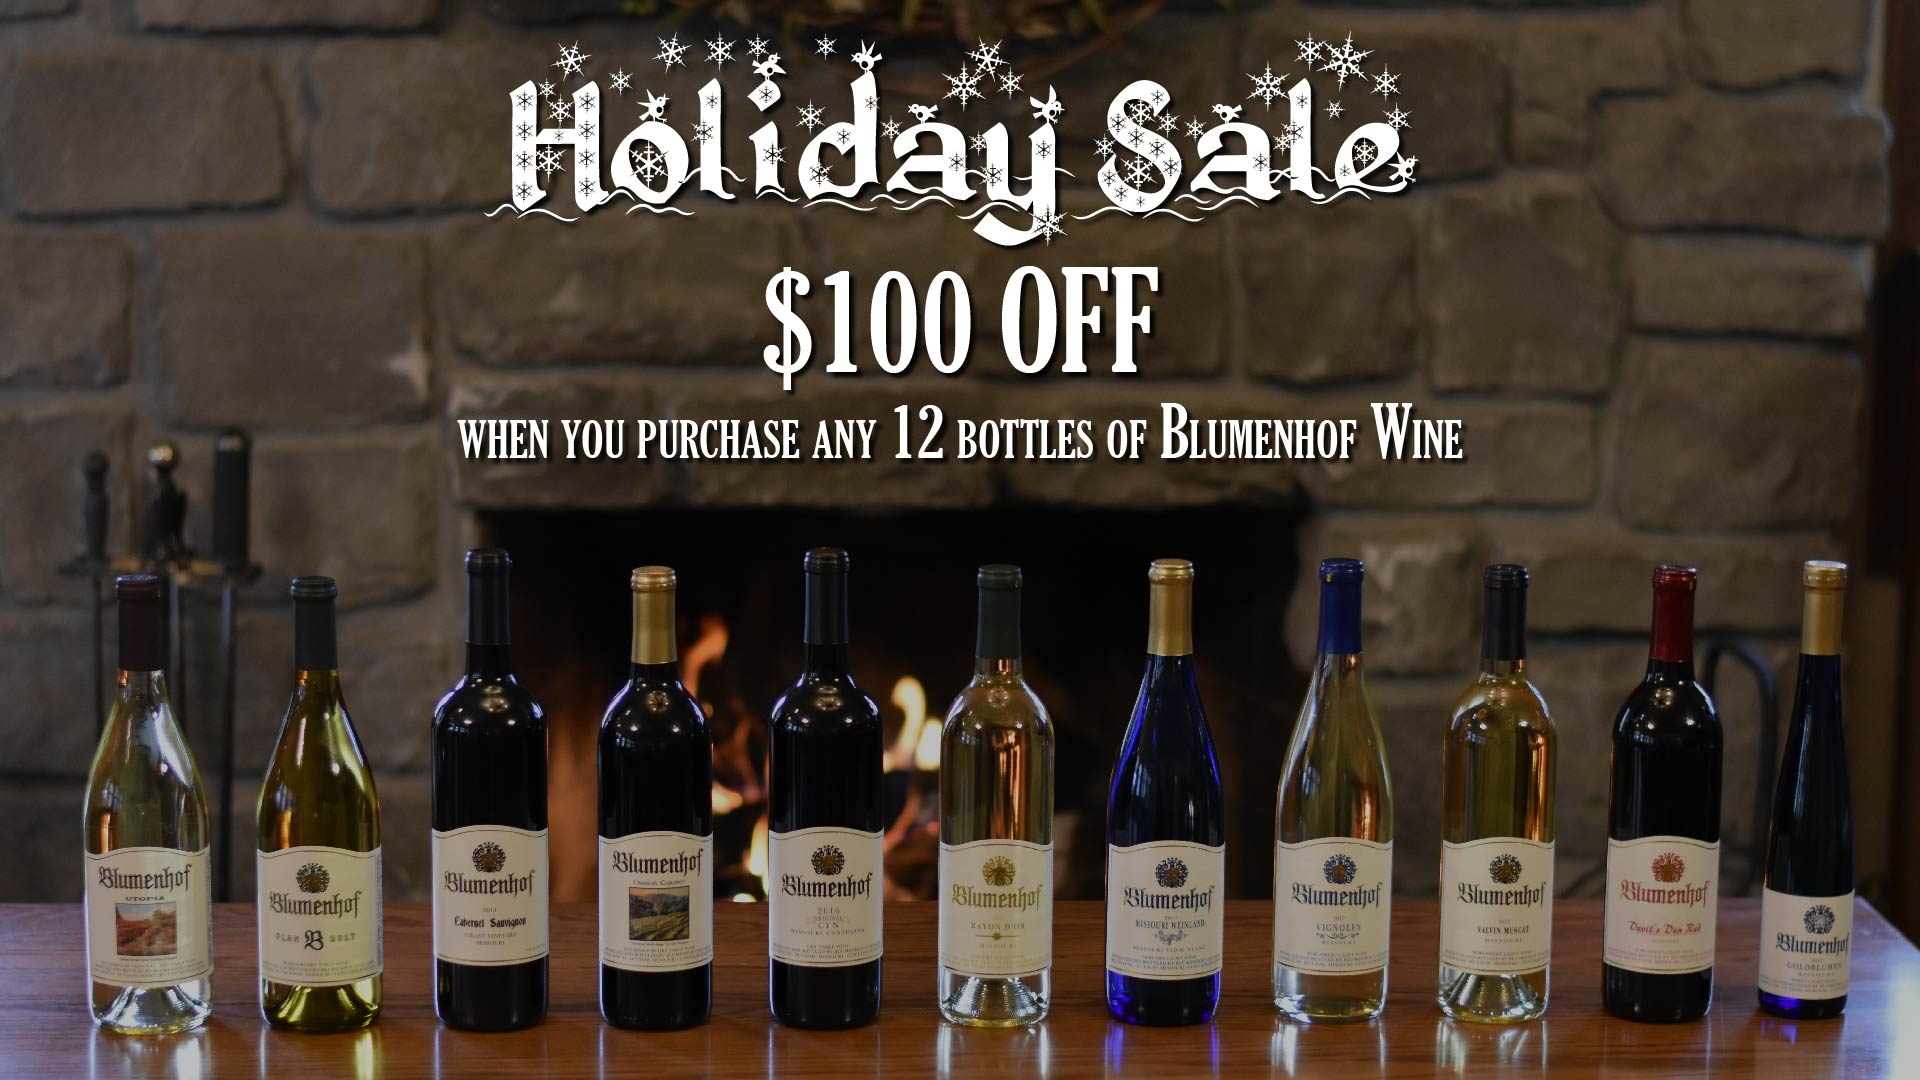 Blumenhof Winery's 2018 Holiday Sale